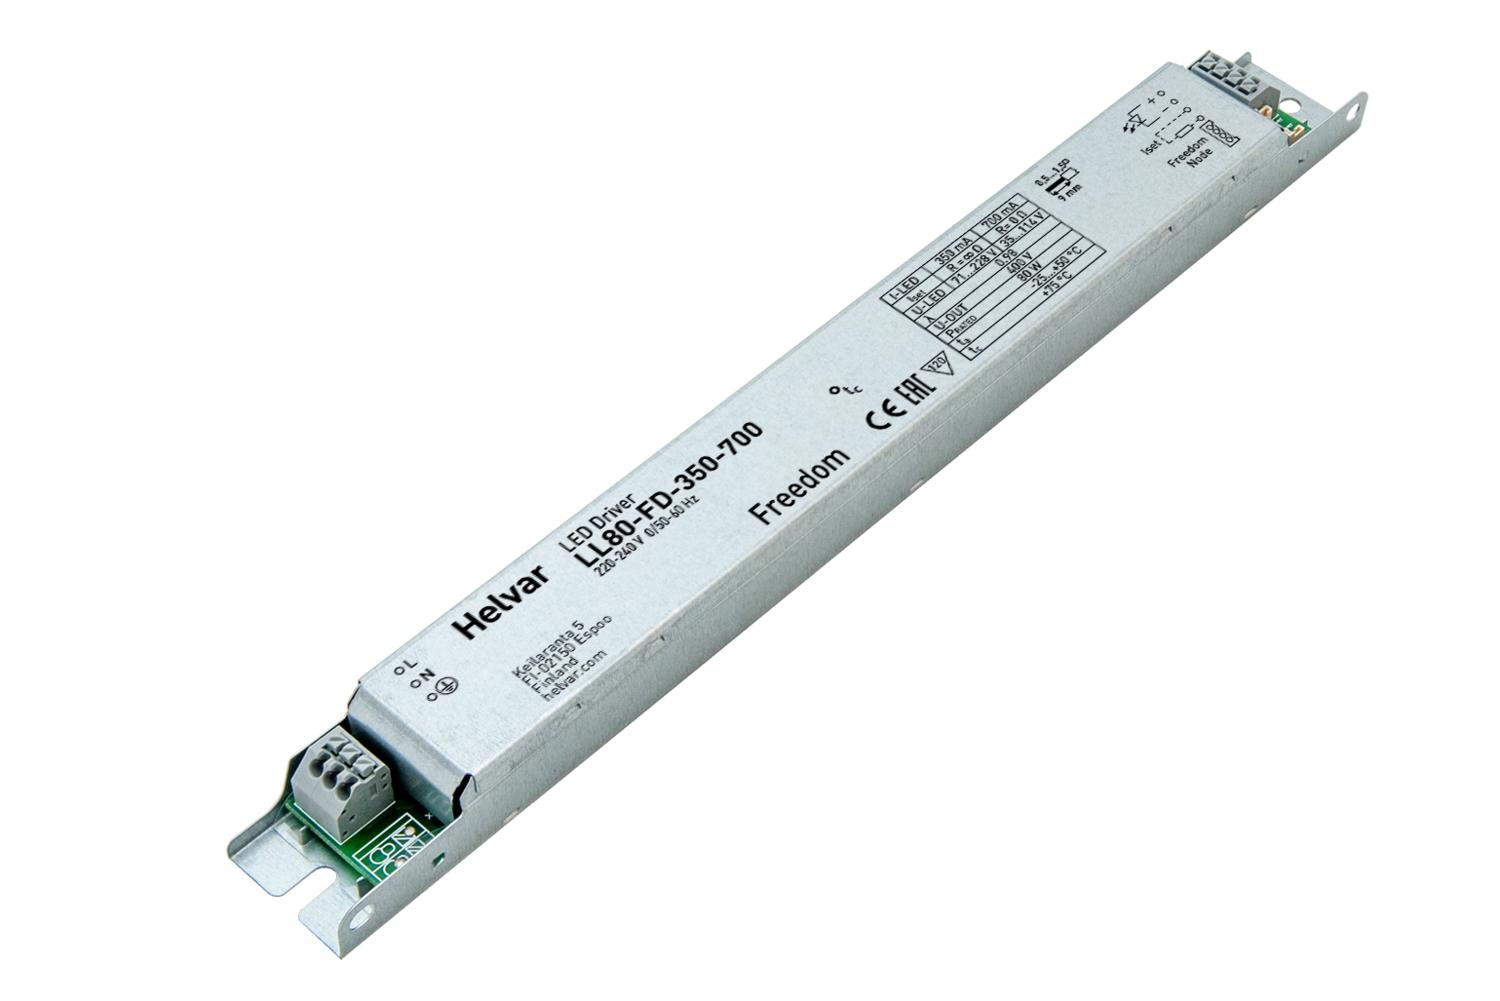 Freedom LED driver for wireless lighting control